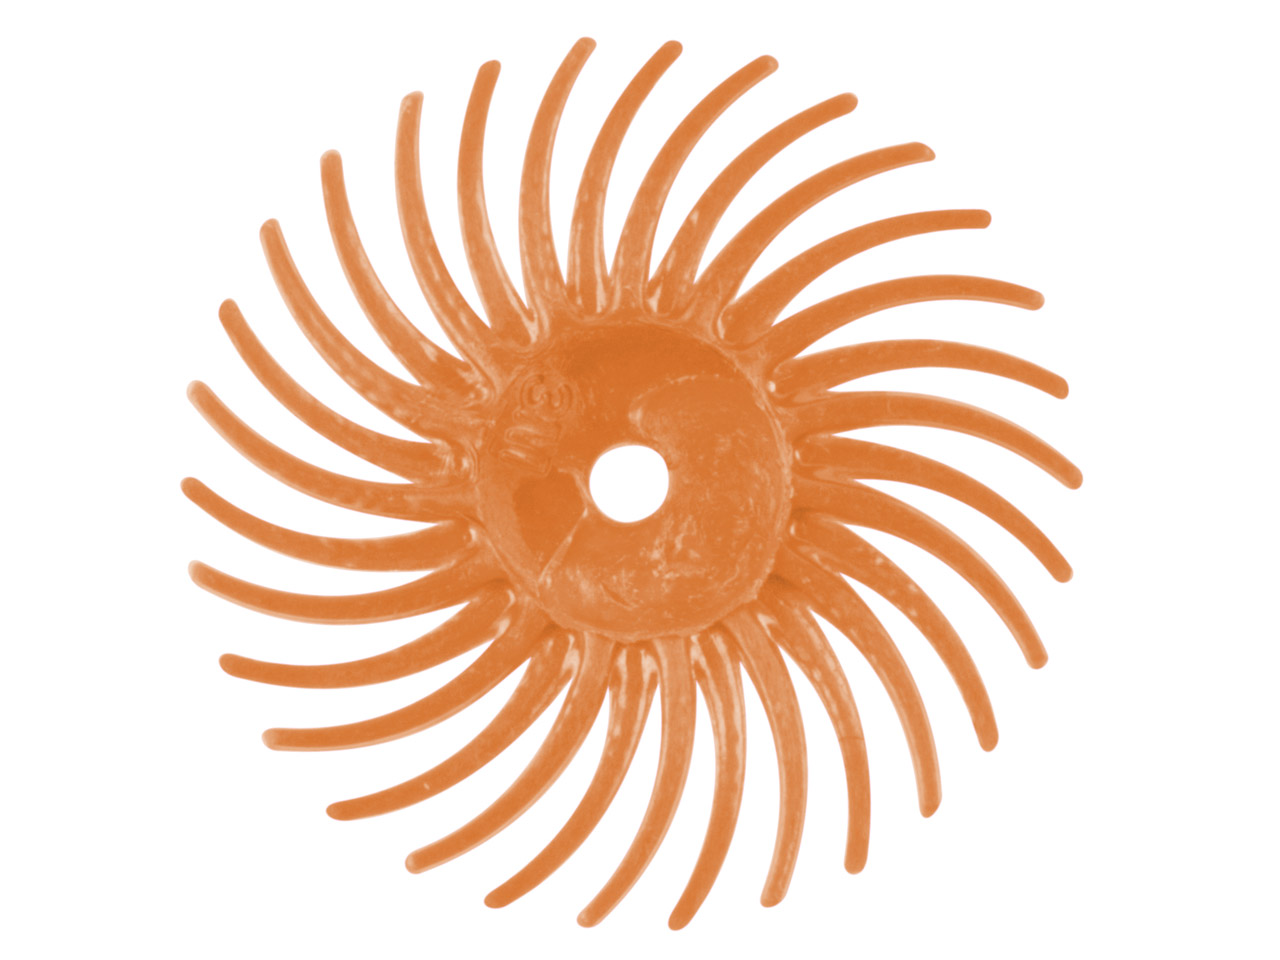 3m Radial Abrasive Disc Peach      Pack of 6 Medium/fine